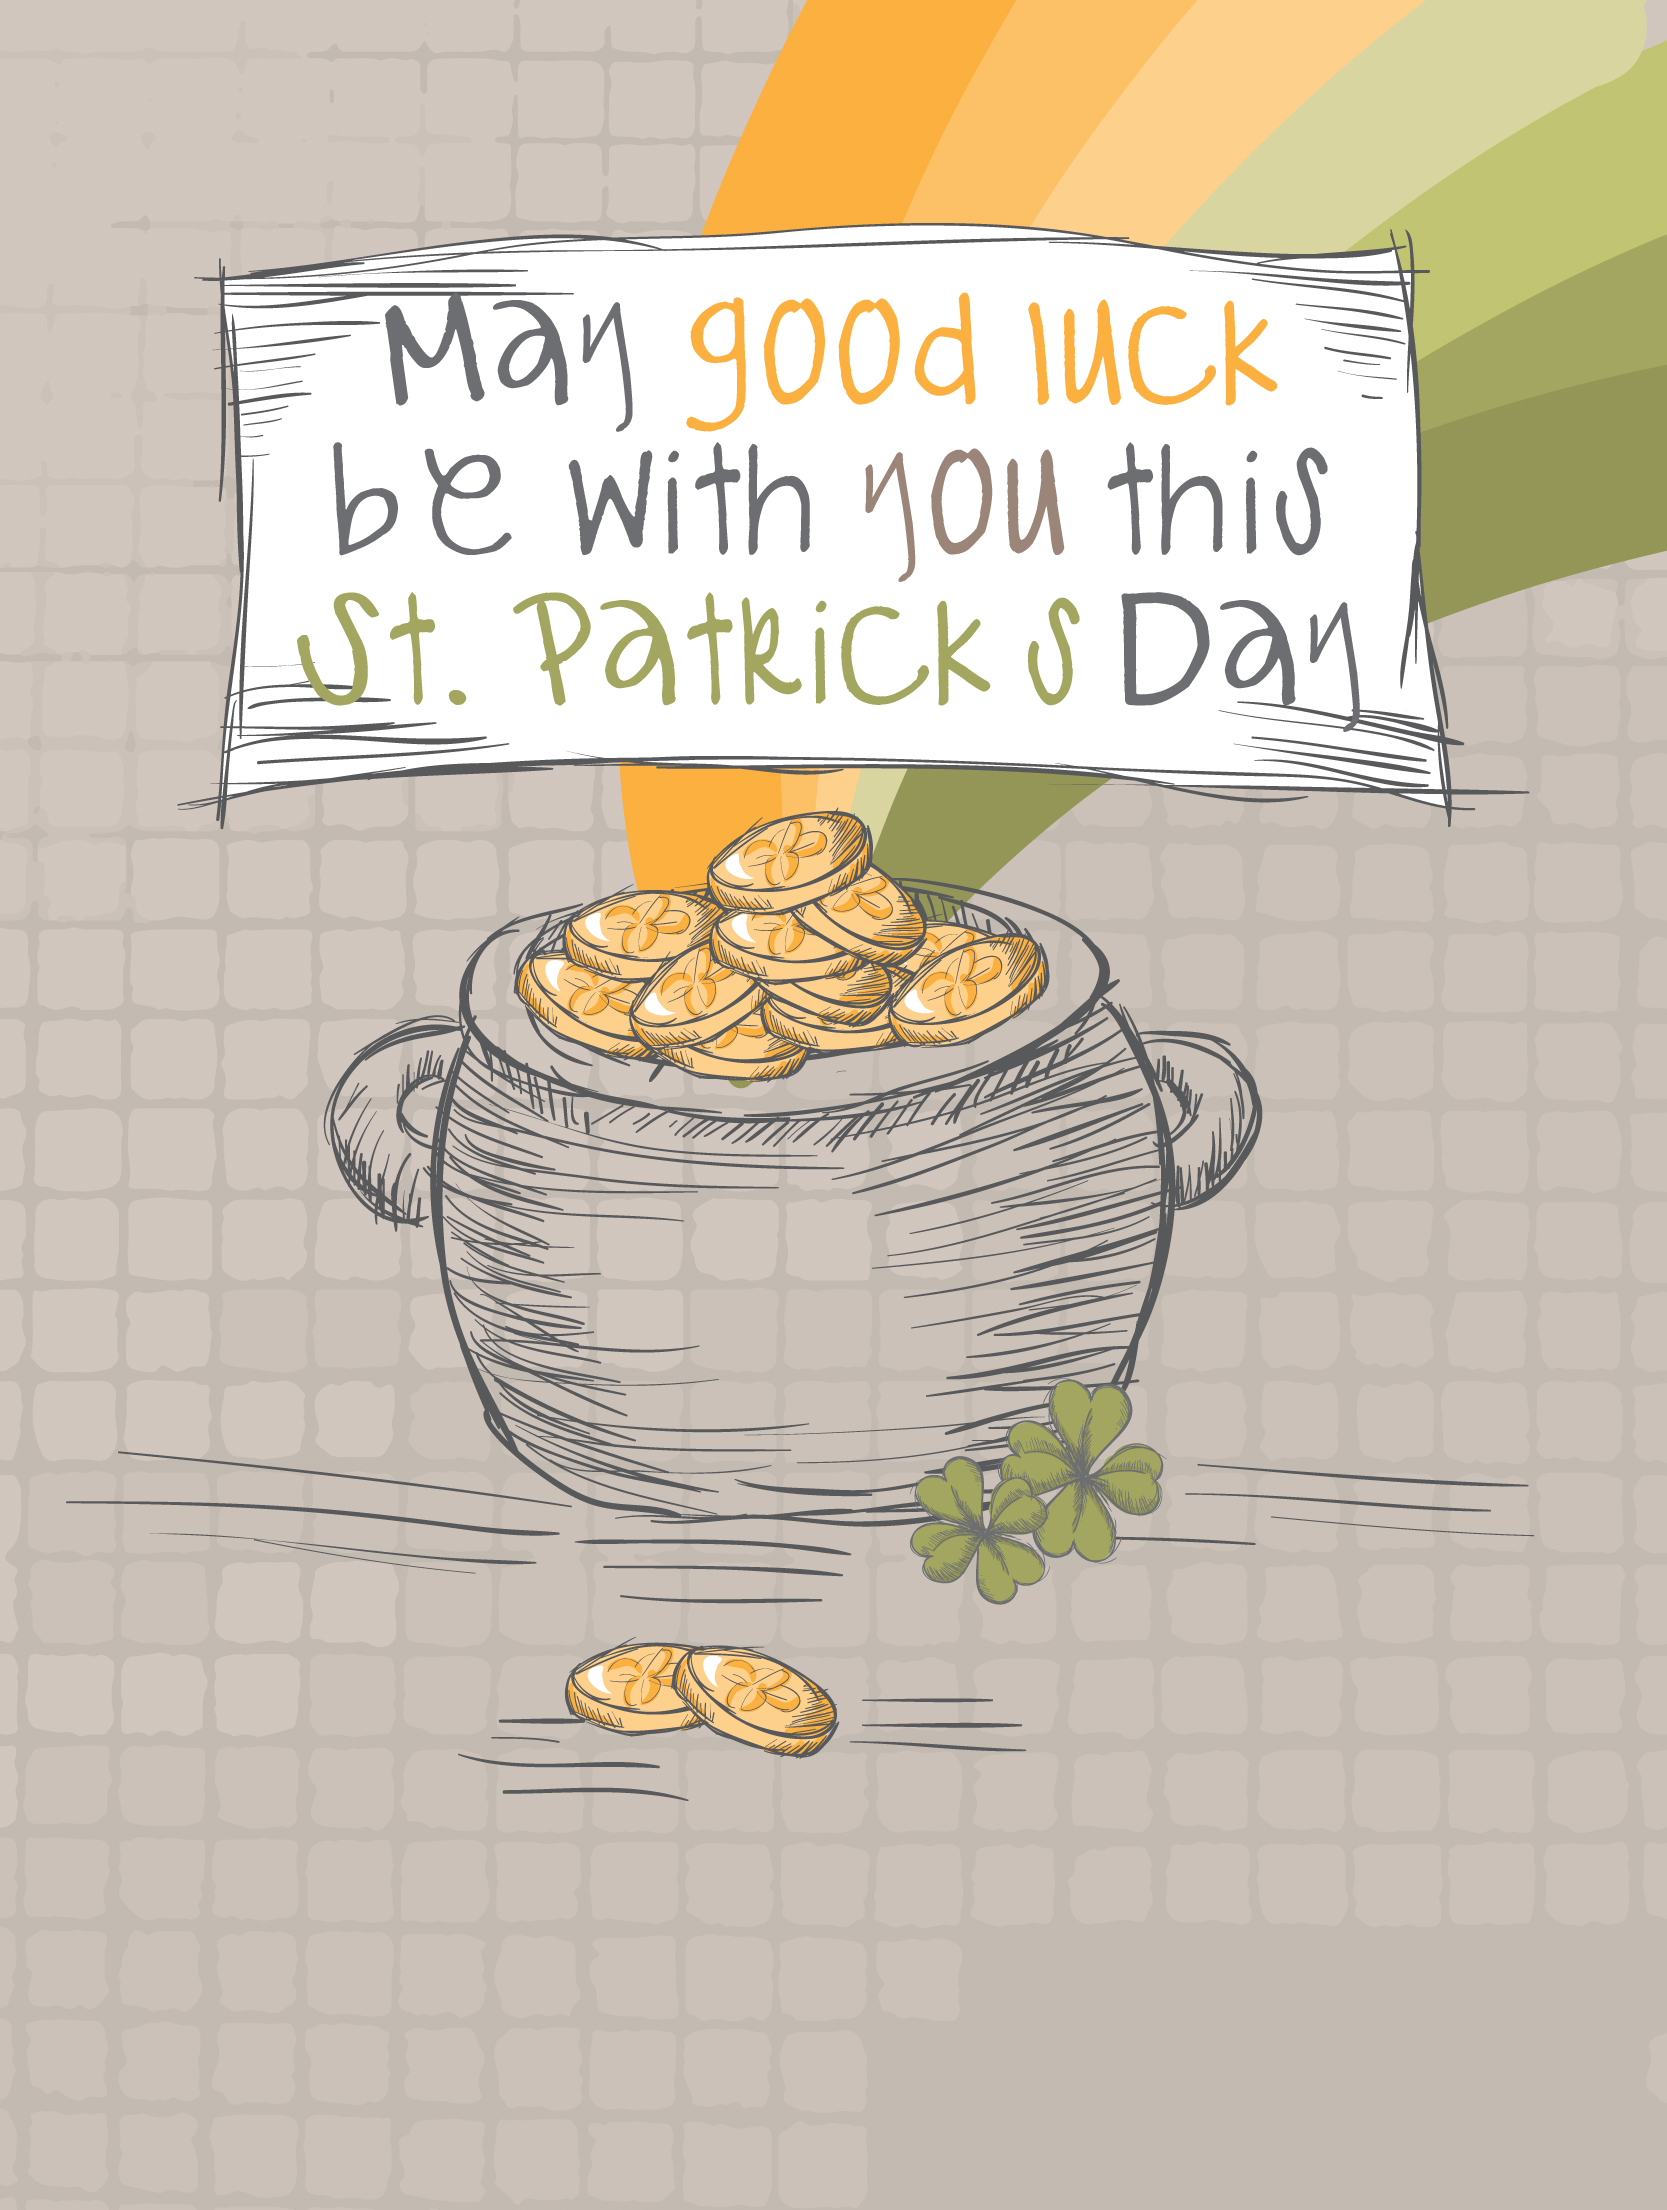 May good luck be with you this st. patrick's day illustration of pot of gold with orange and green rainbow